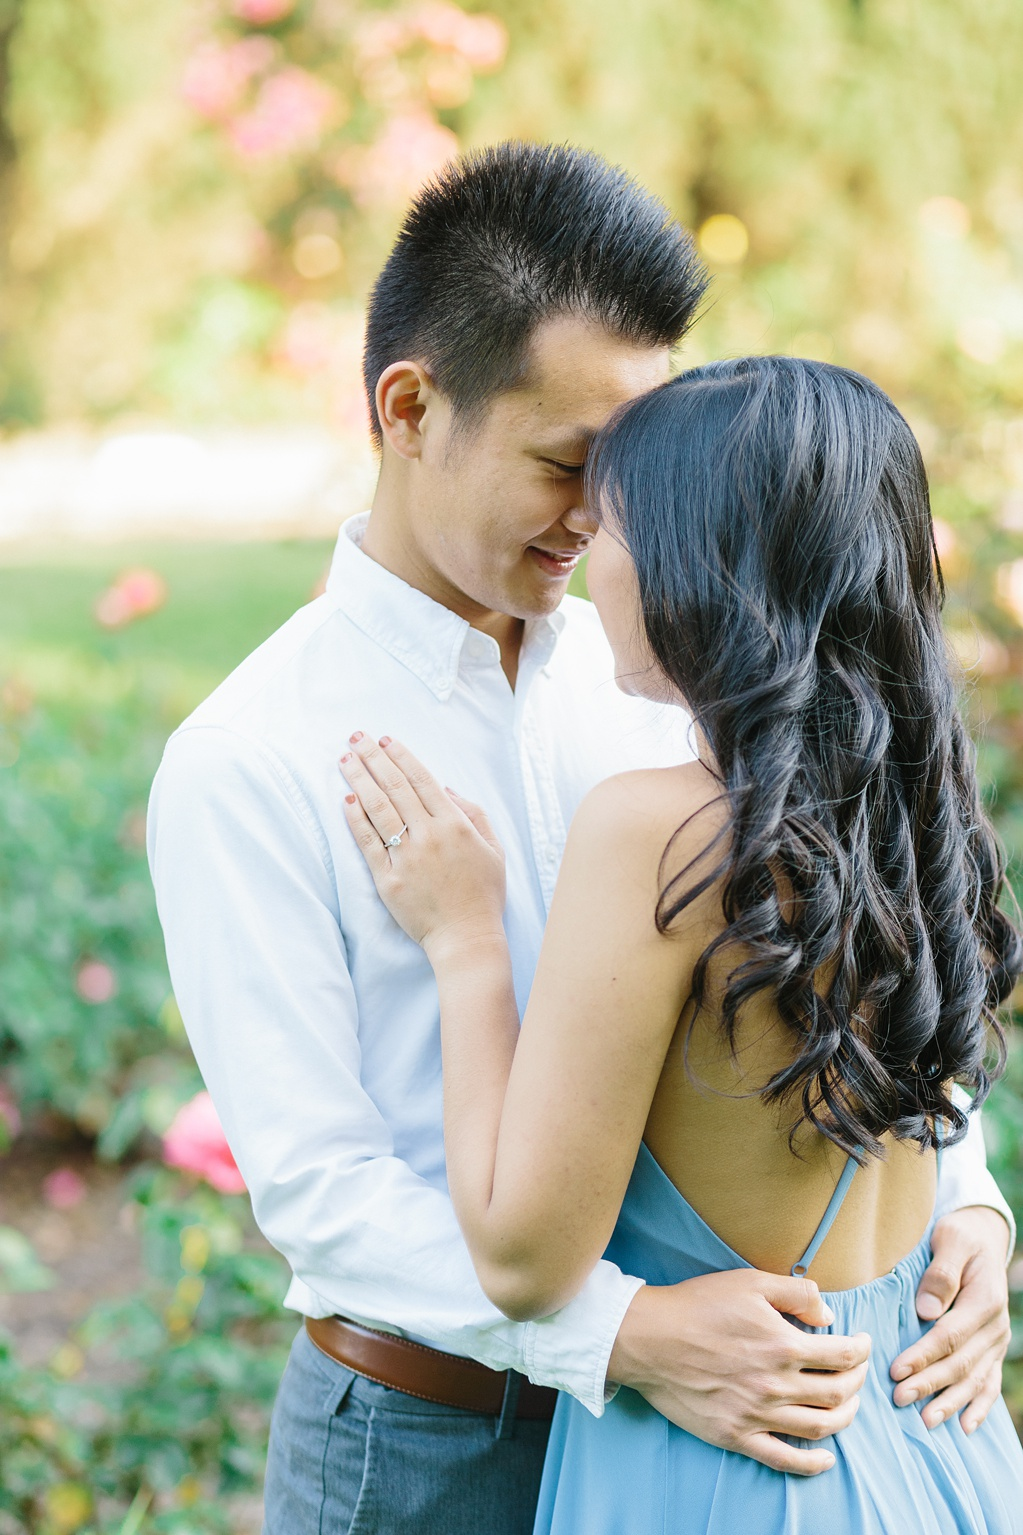 Elegant rose garden engagement shoot at Lacy Park in Pasadena by LA wedding photographer-Madison Ellis Photography (63)